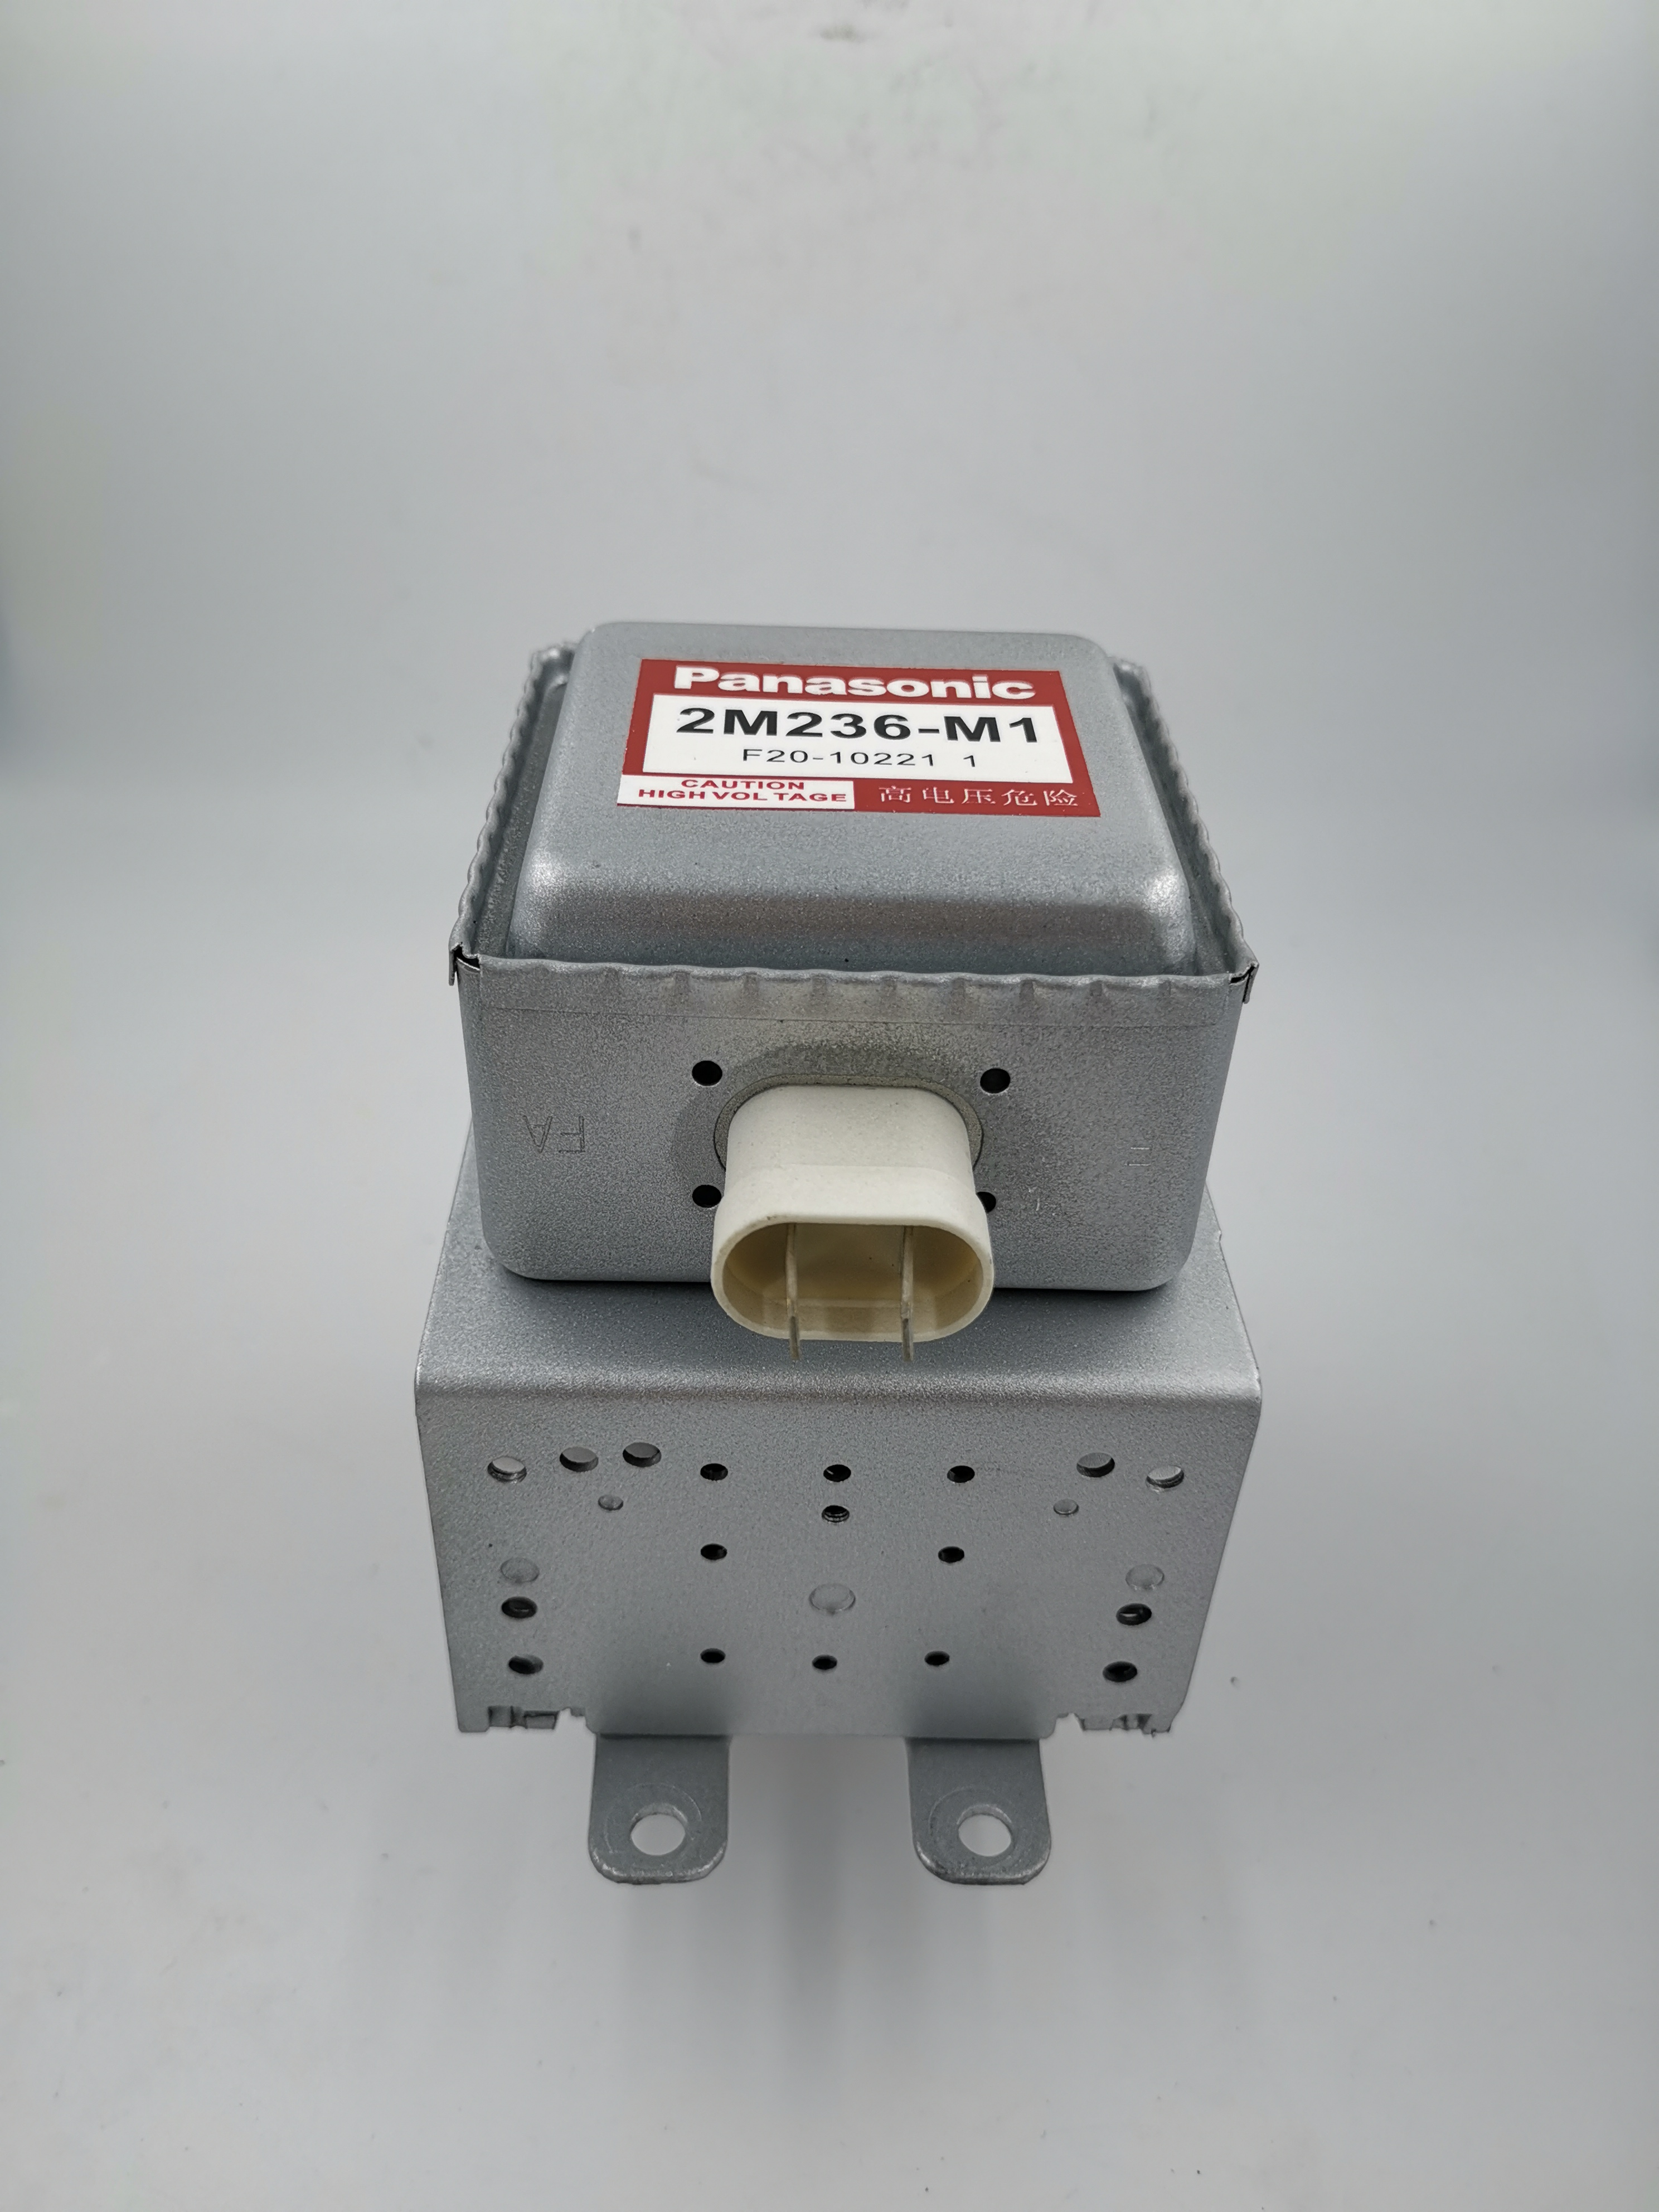 Image 4 - Microwave Oven Magnetron for Panasonic 2M236 M1-in Microwave Oven Parts from Home Appliances